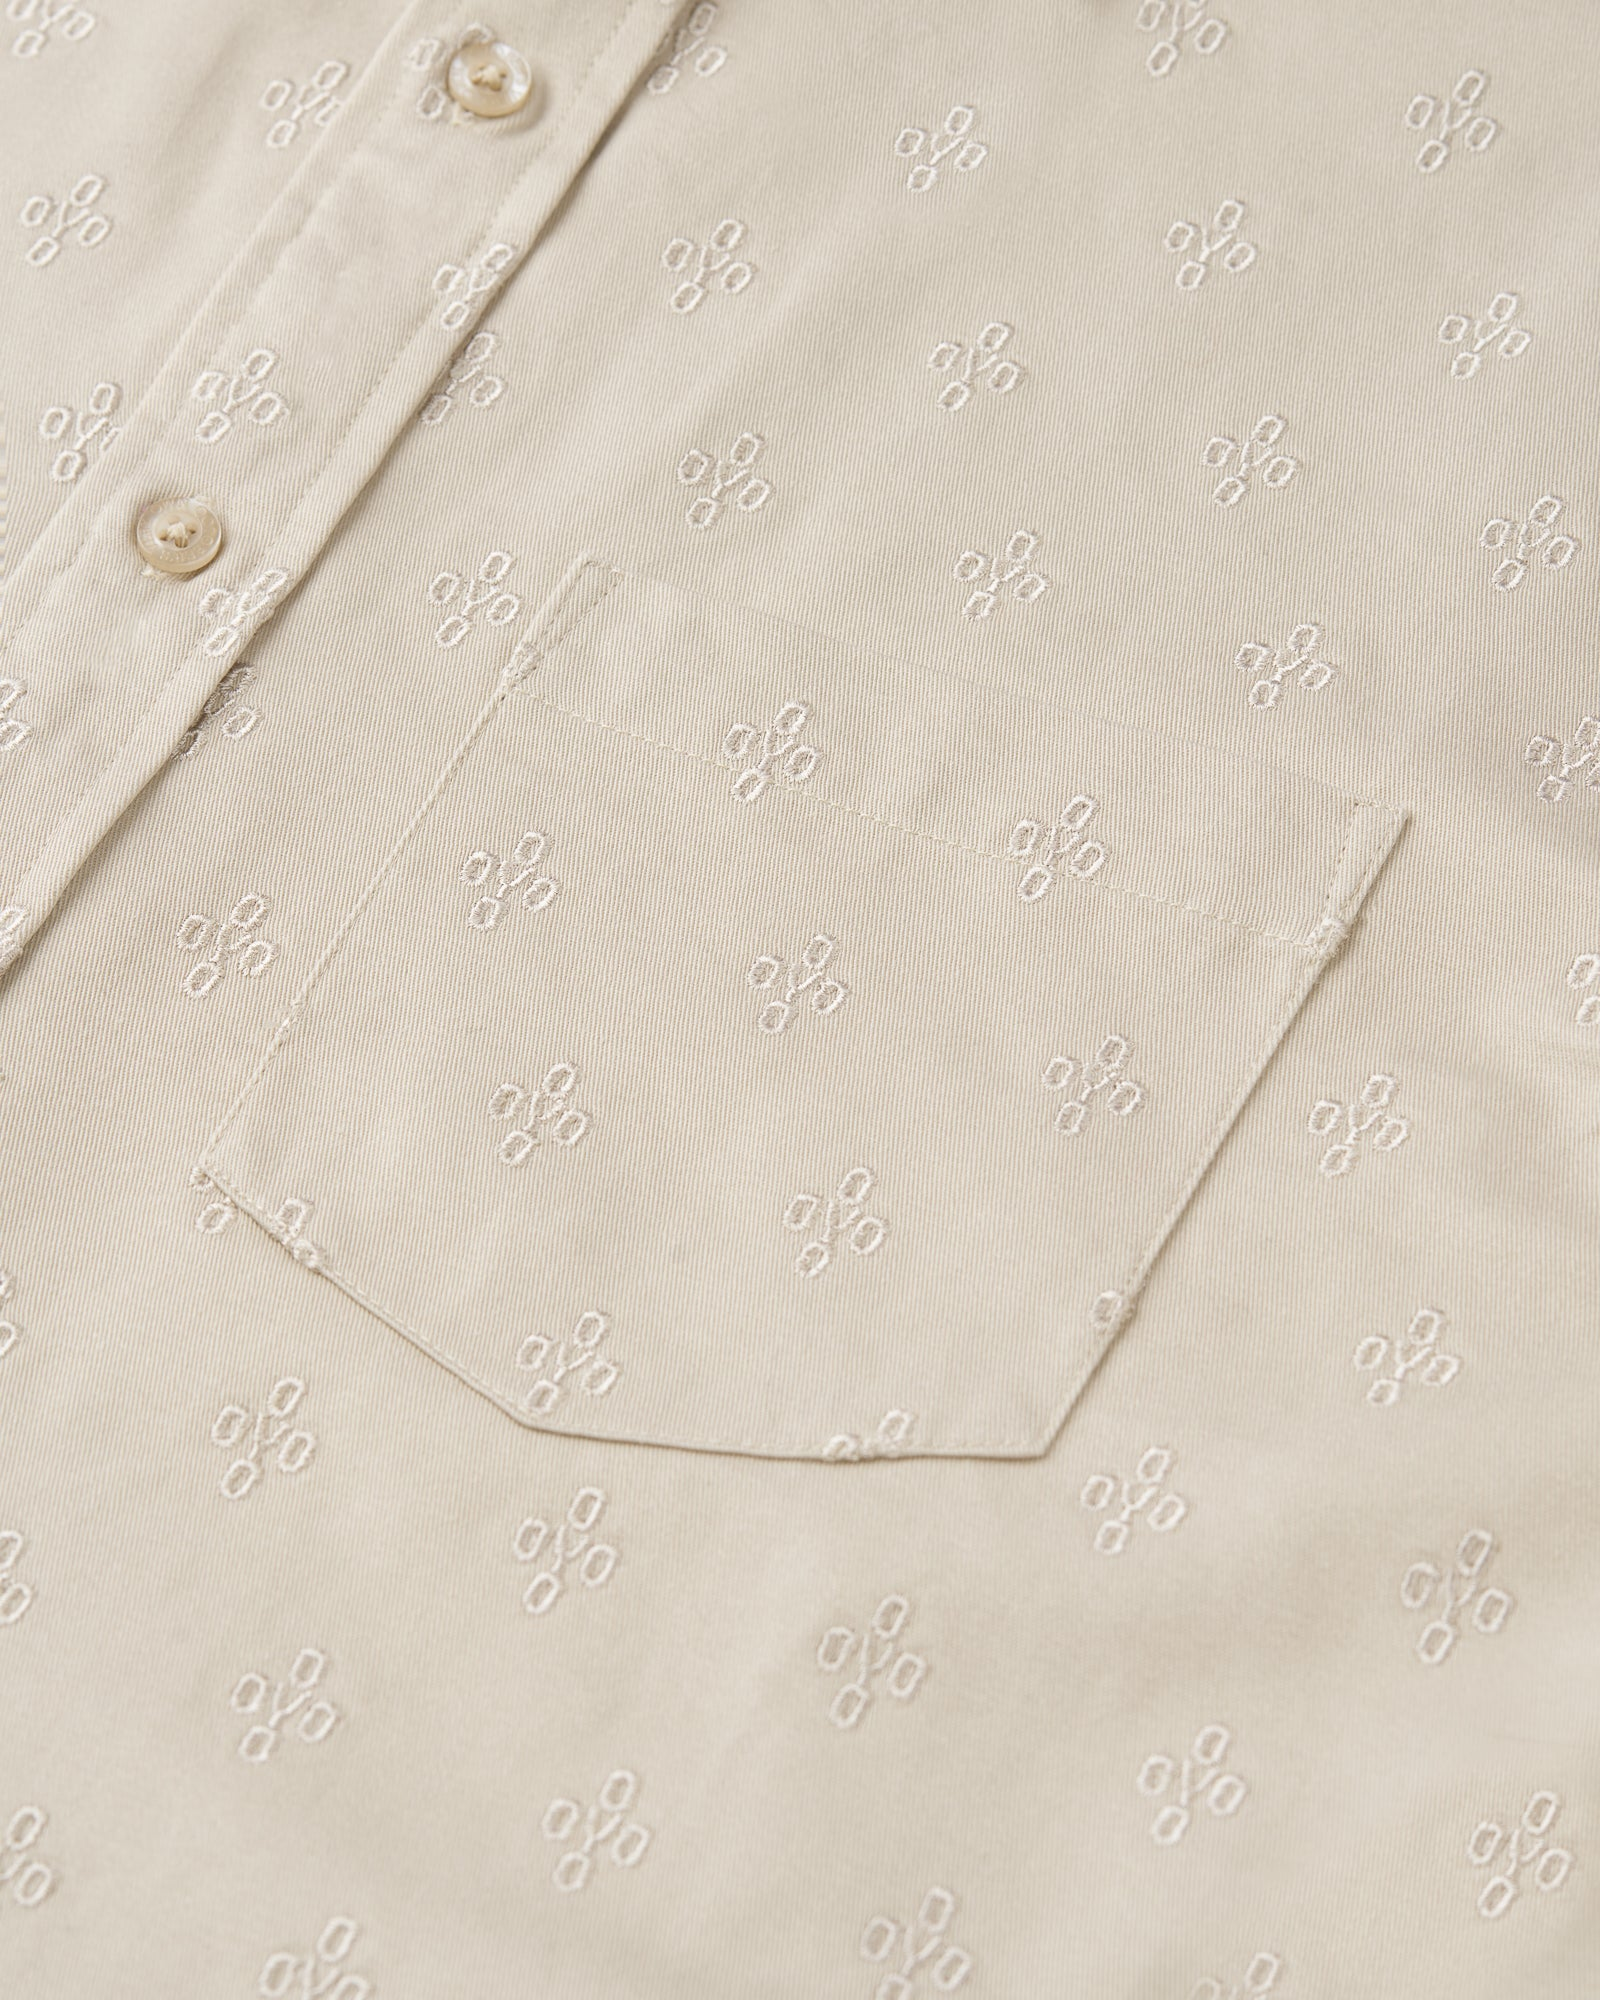 MONOGRAM EMBROIDERED BUTTON DOWN SHIRT - SAND IMAGE #2